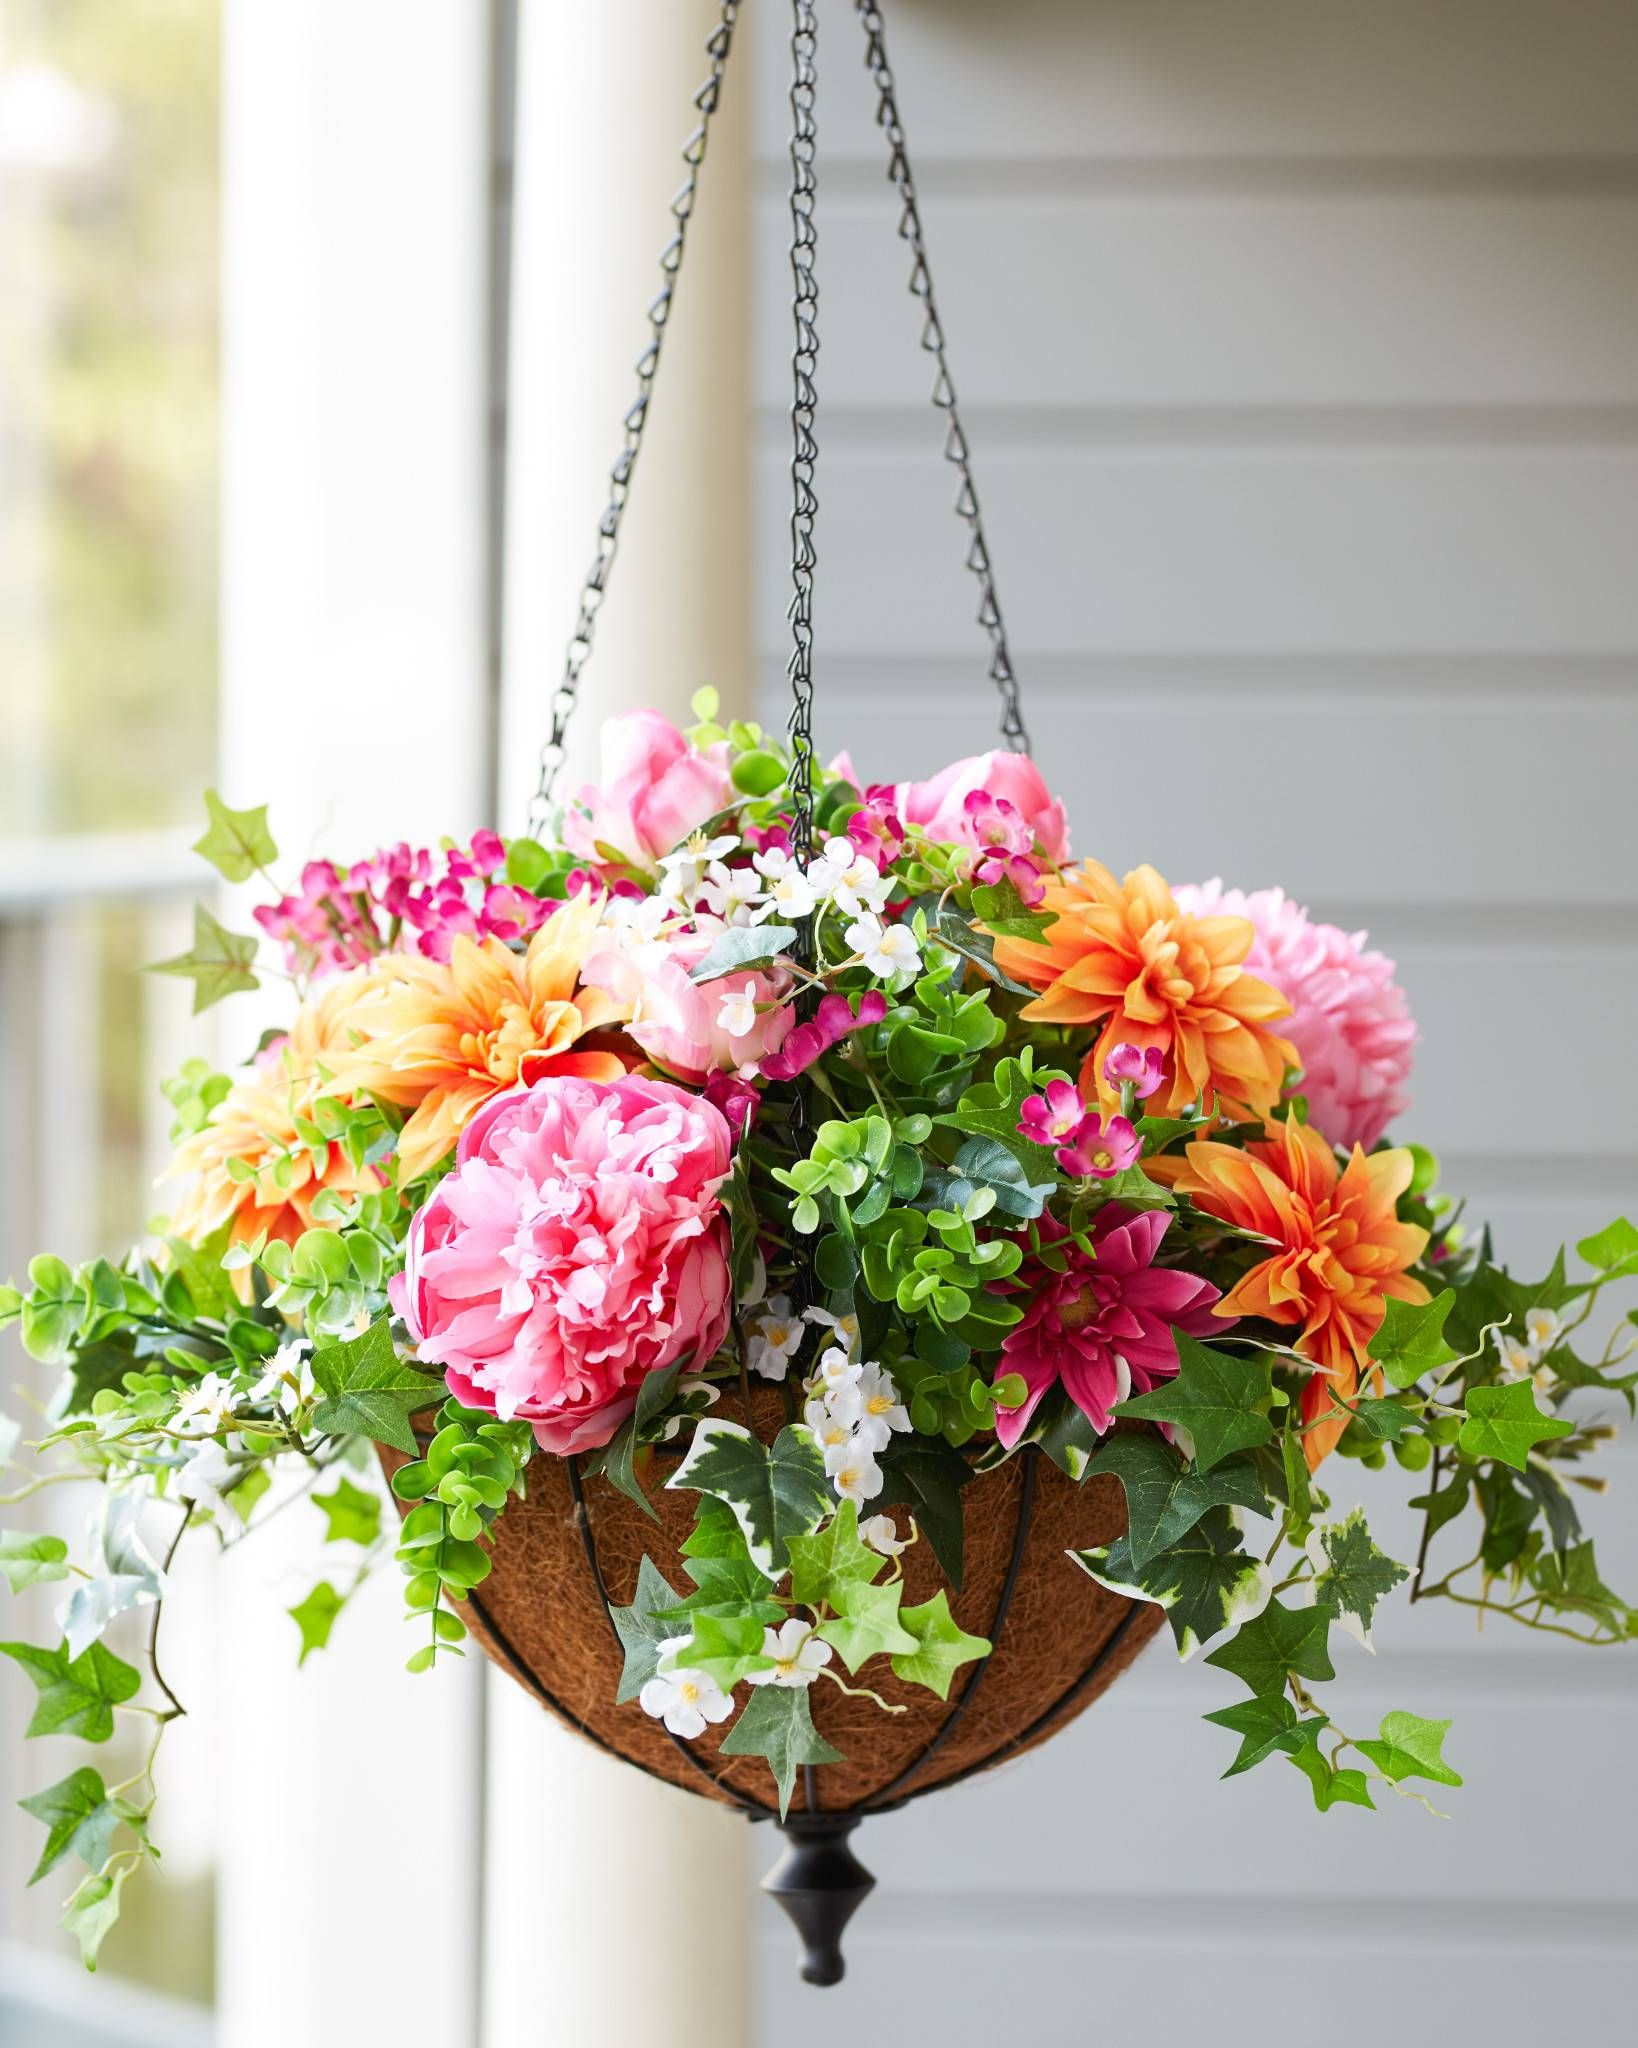 Outdoor Radiant Peony Hanging Basket Hanging Plants Indoor